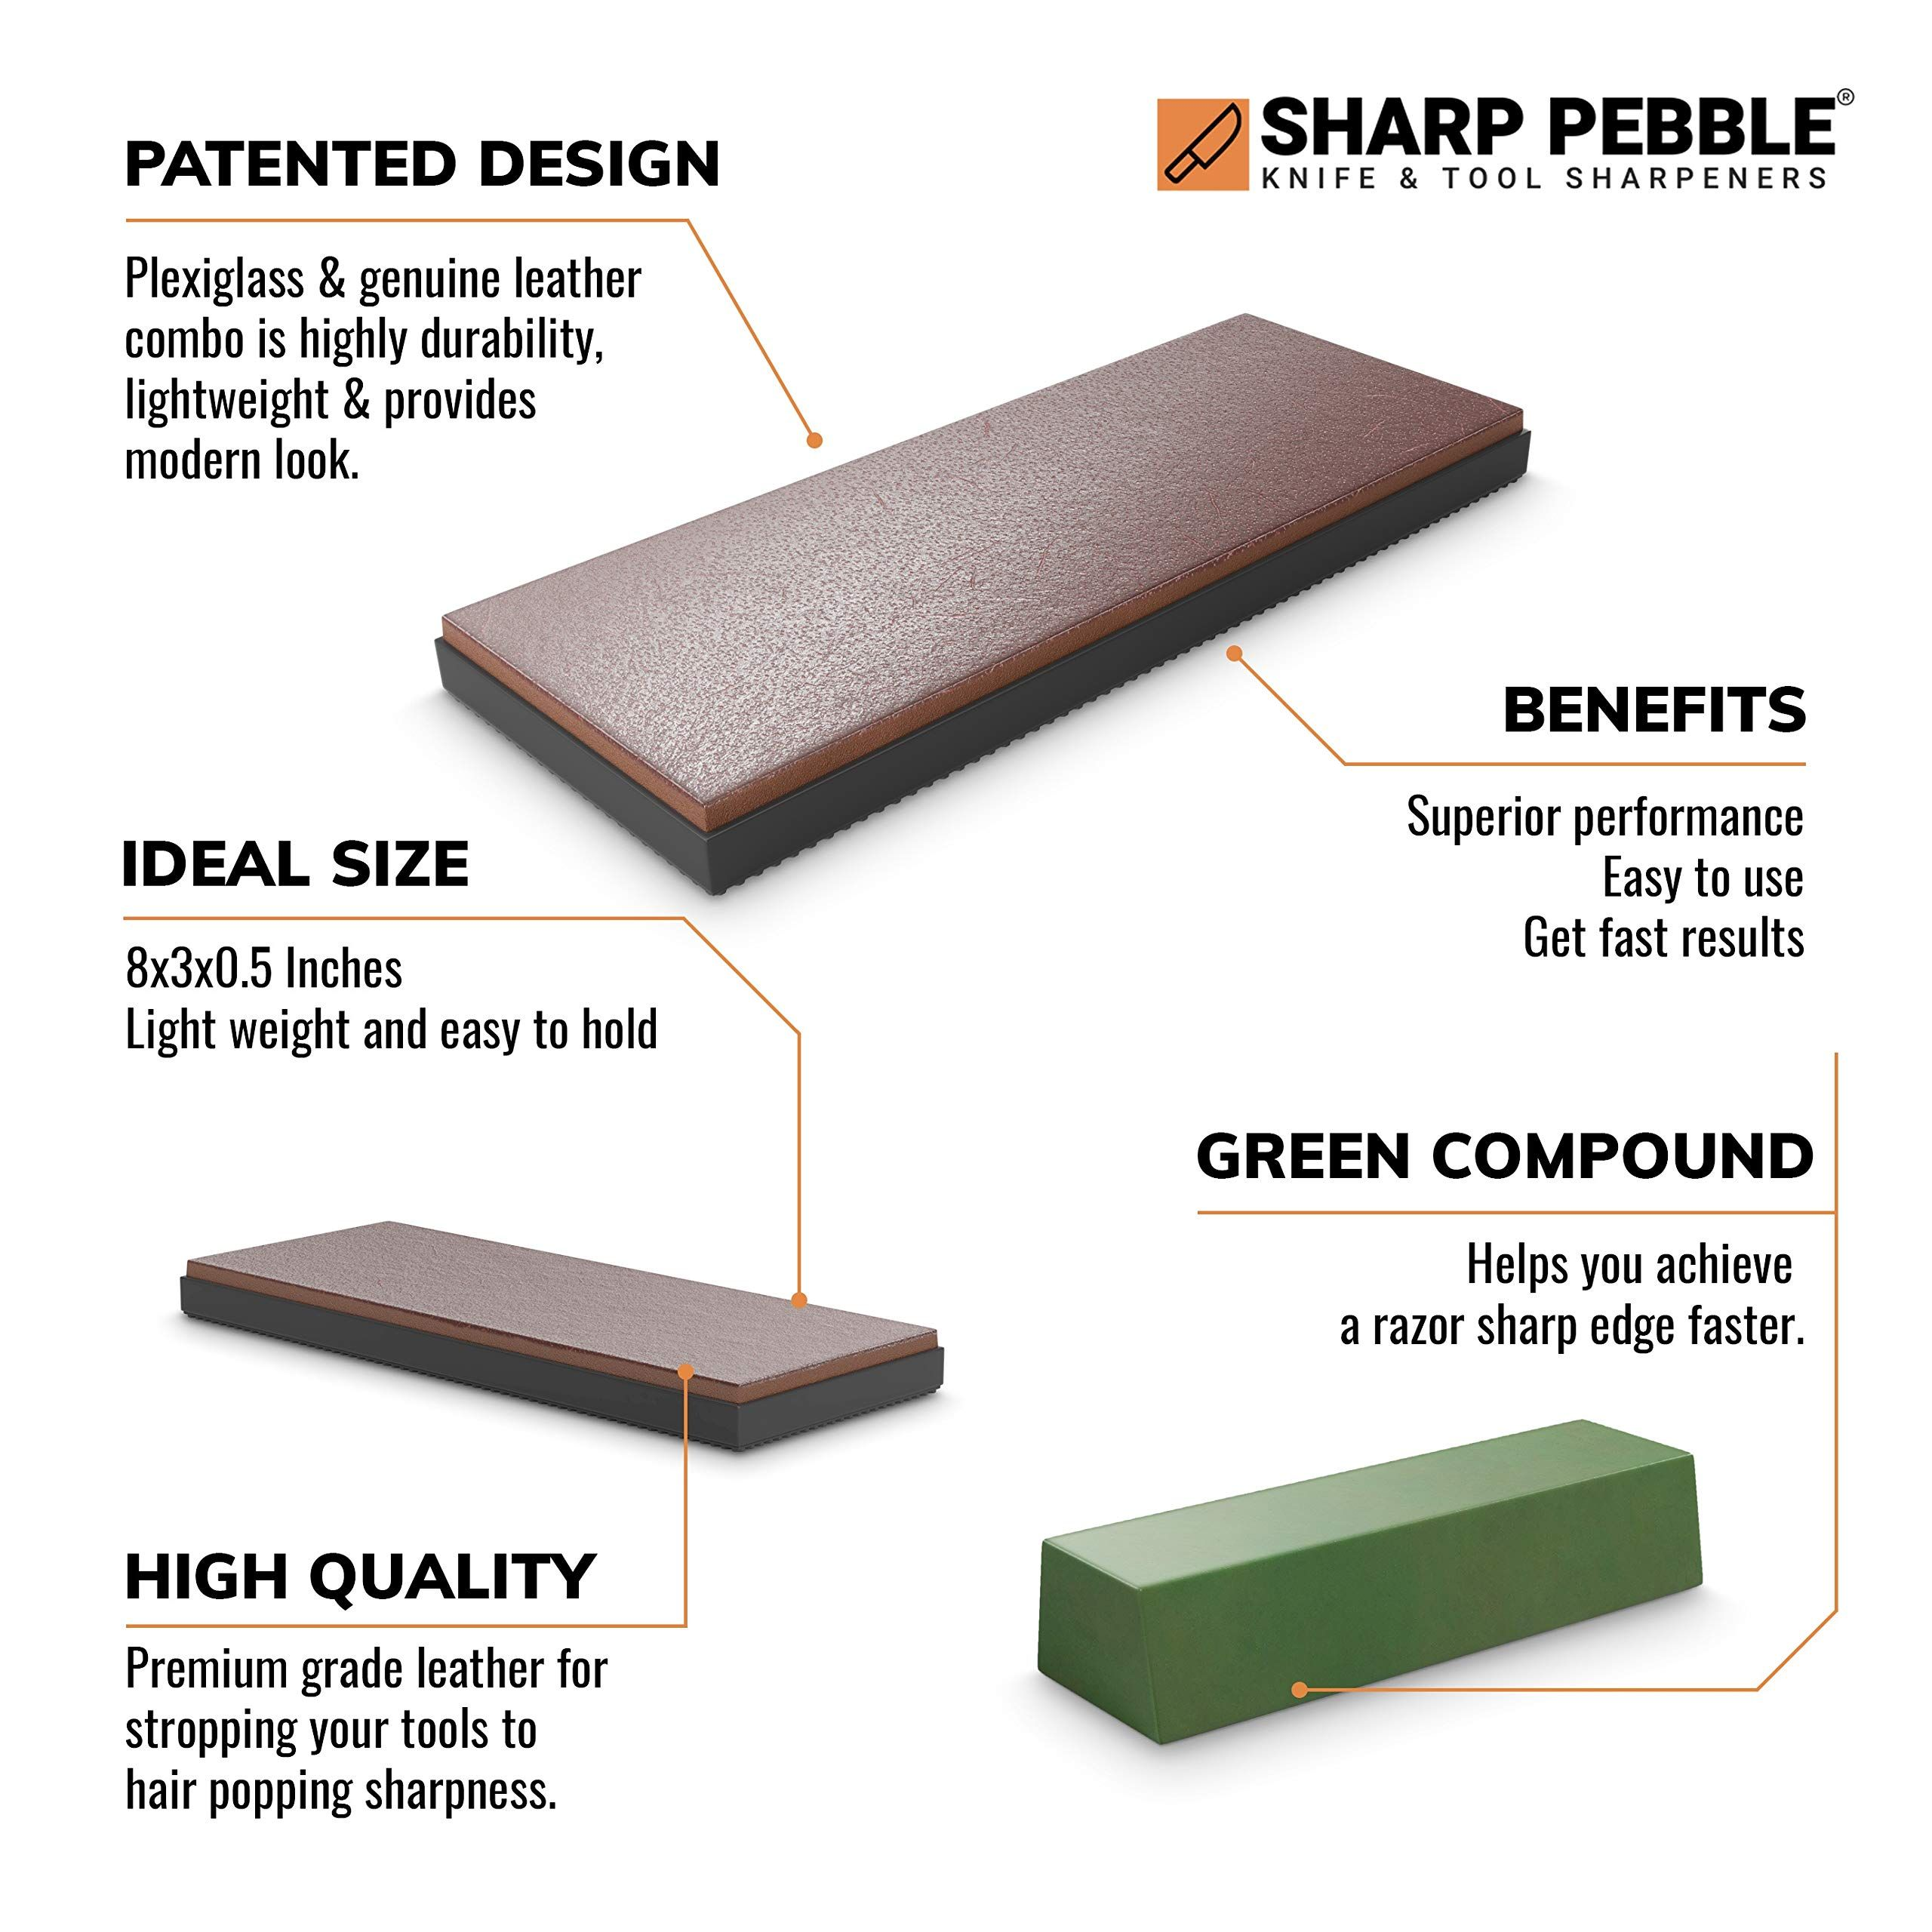 Sharp Pebble Premium Leather Strop With Polishing Compound Premium